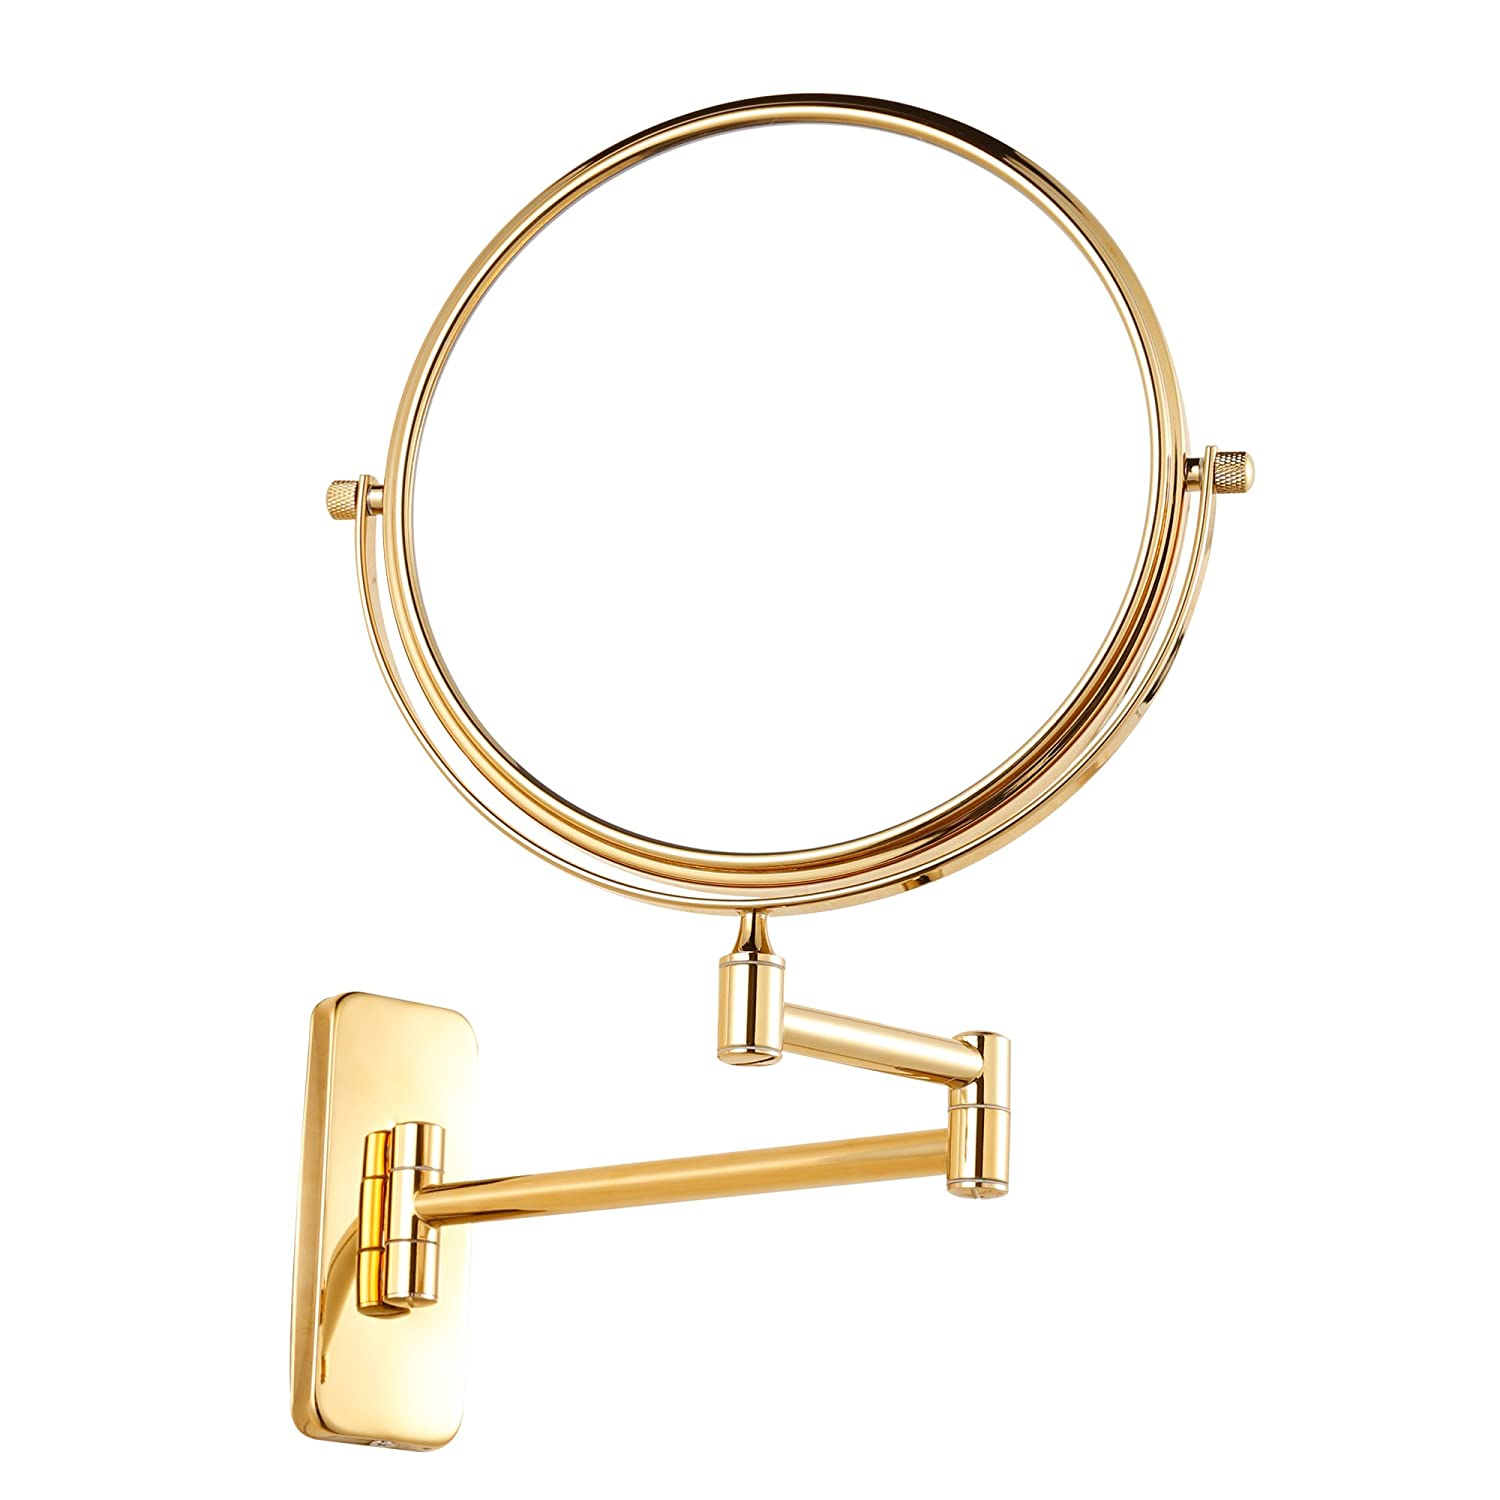 GURUN 8 inch double-sided Wall Mount Makeup Mirror with 10x Magnification,Gold Finish M1406J 8in,10x